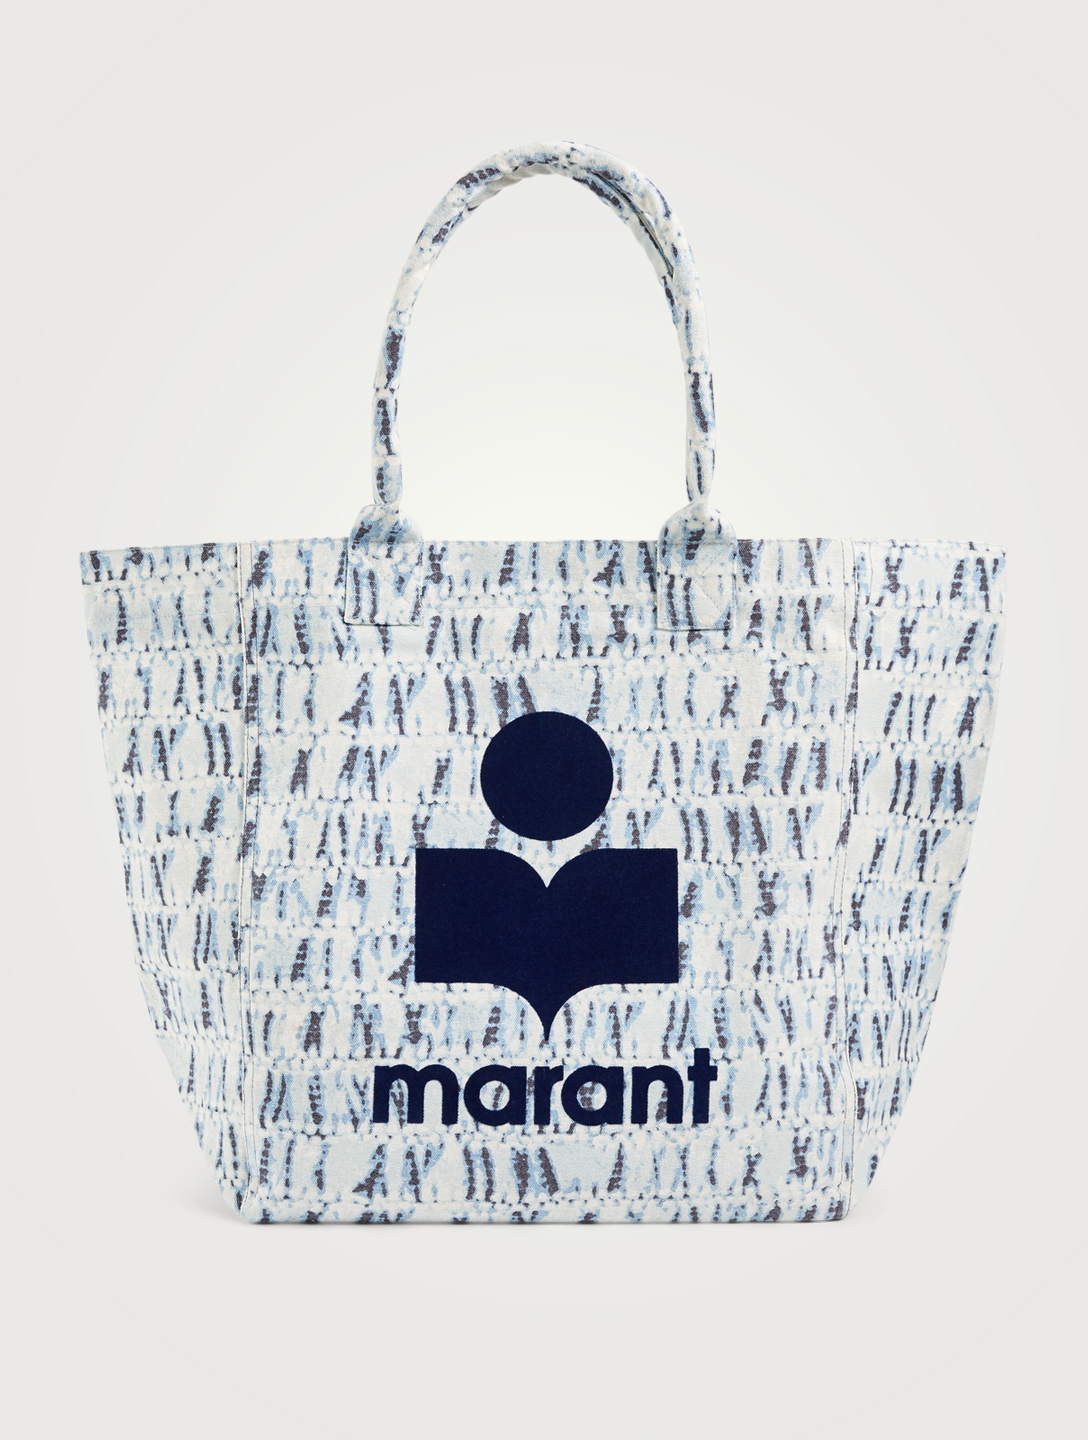 ISABEL MARANT Yenky Canvas Tote Bag In Tie Dye Print With Logo Women's Blue